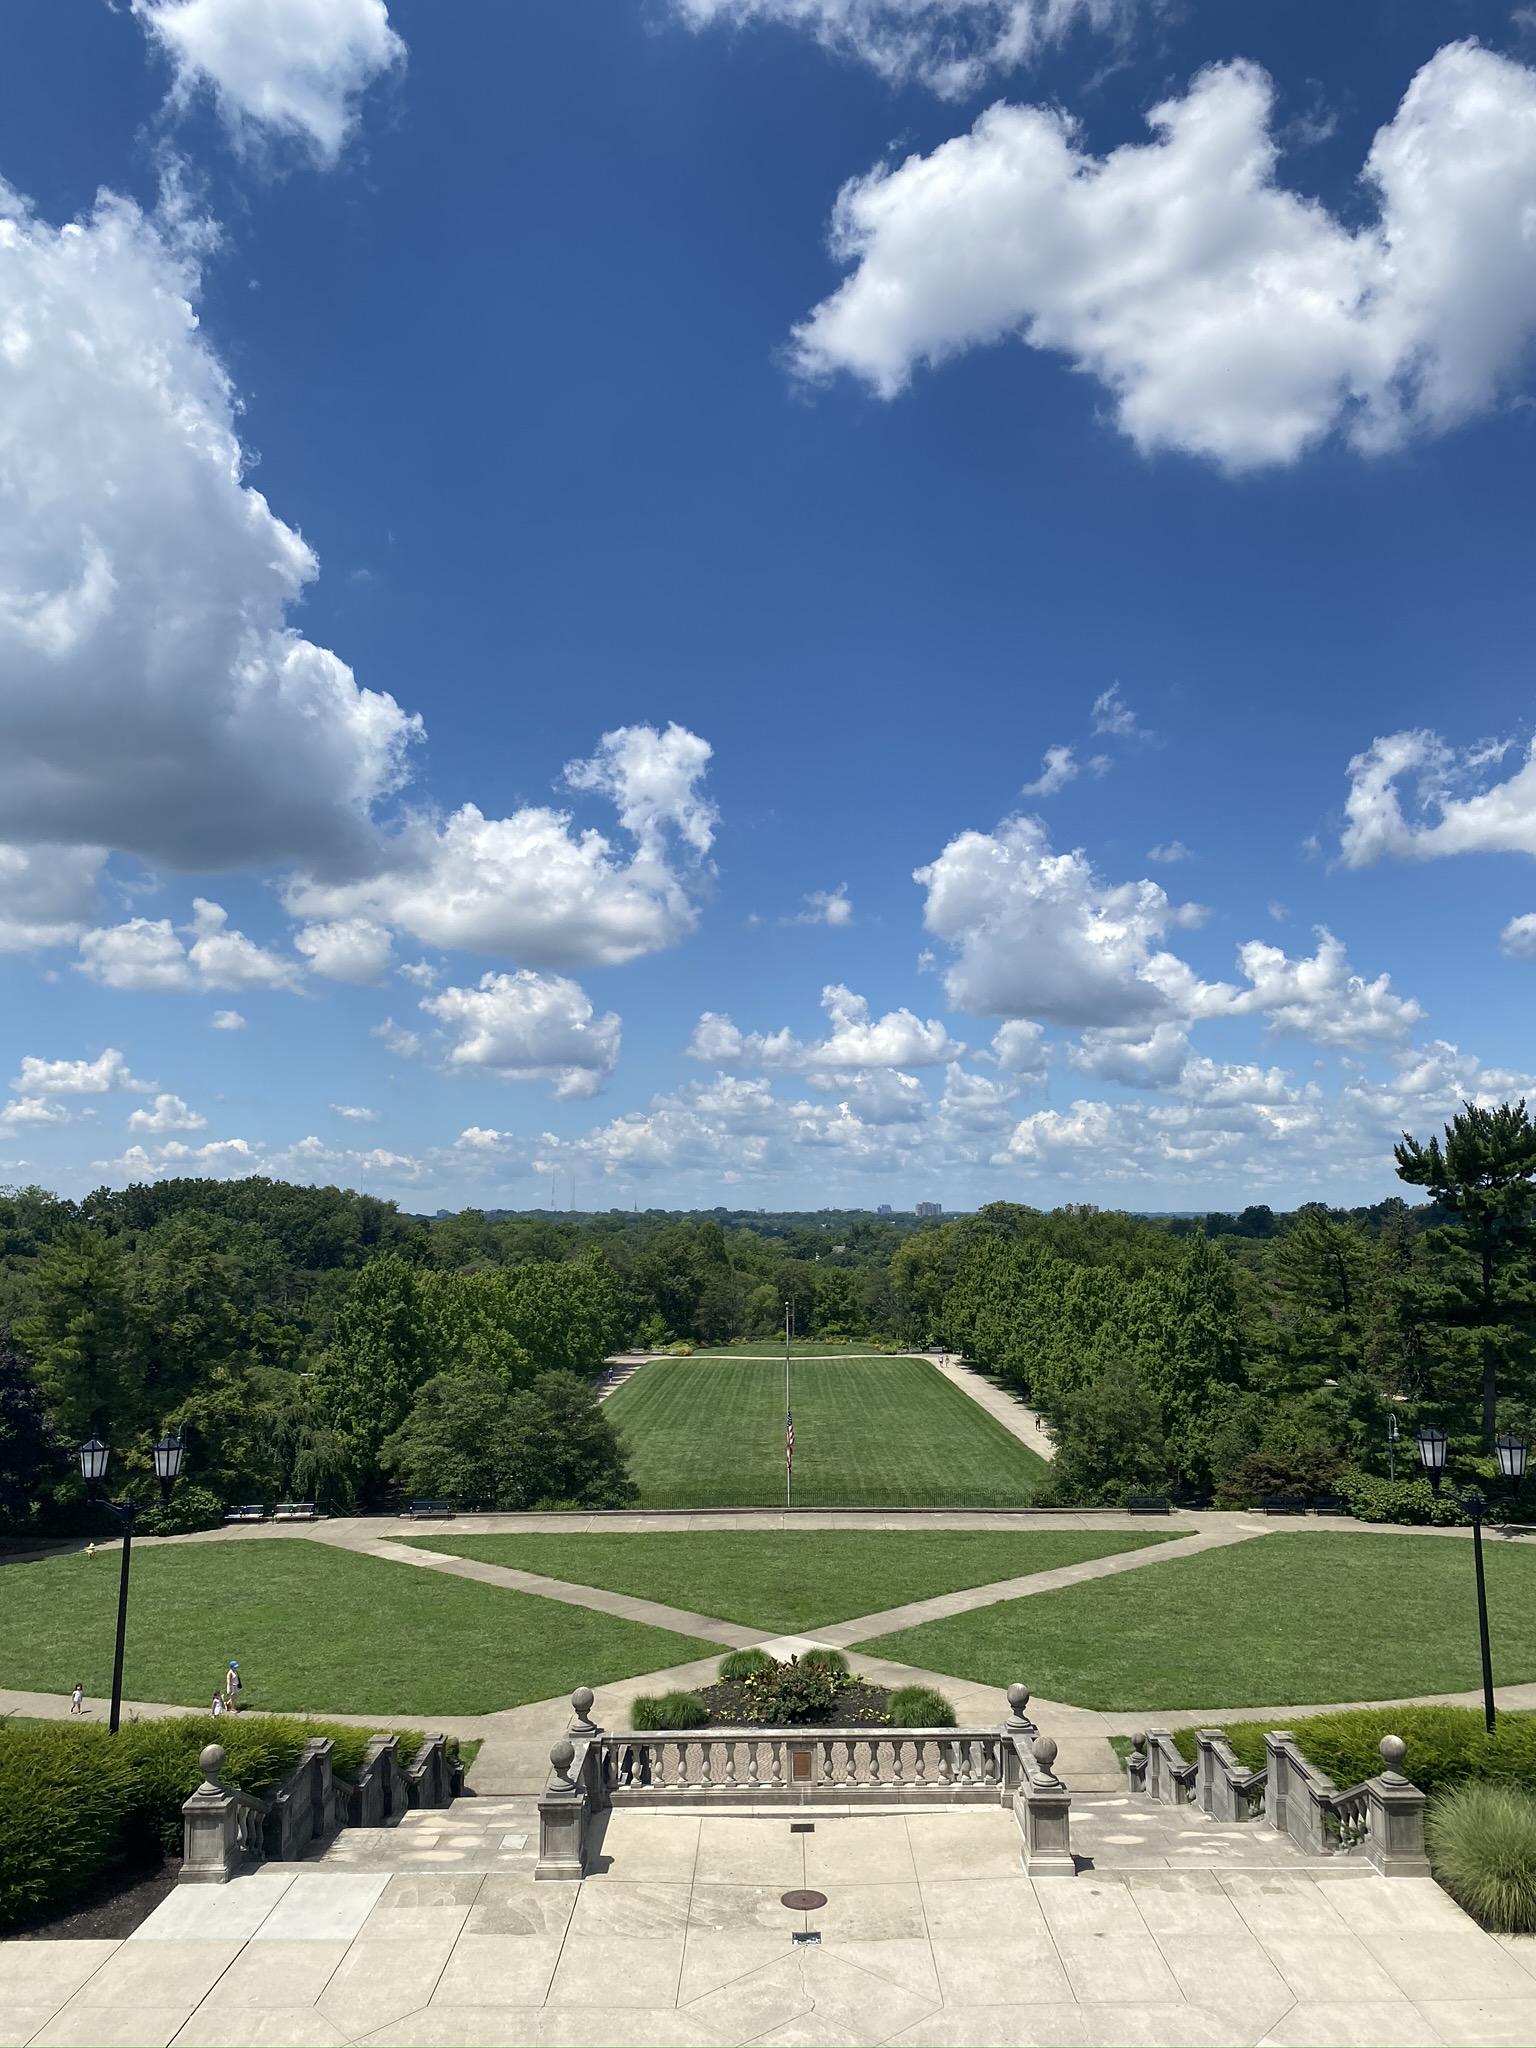 View from the pavilion at Ault Park in Cincinnati, Ohio